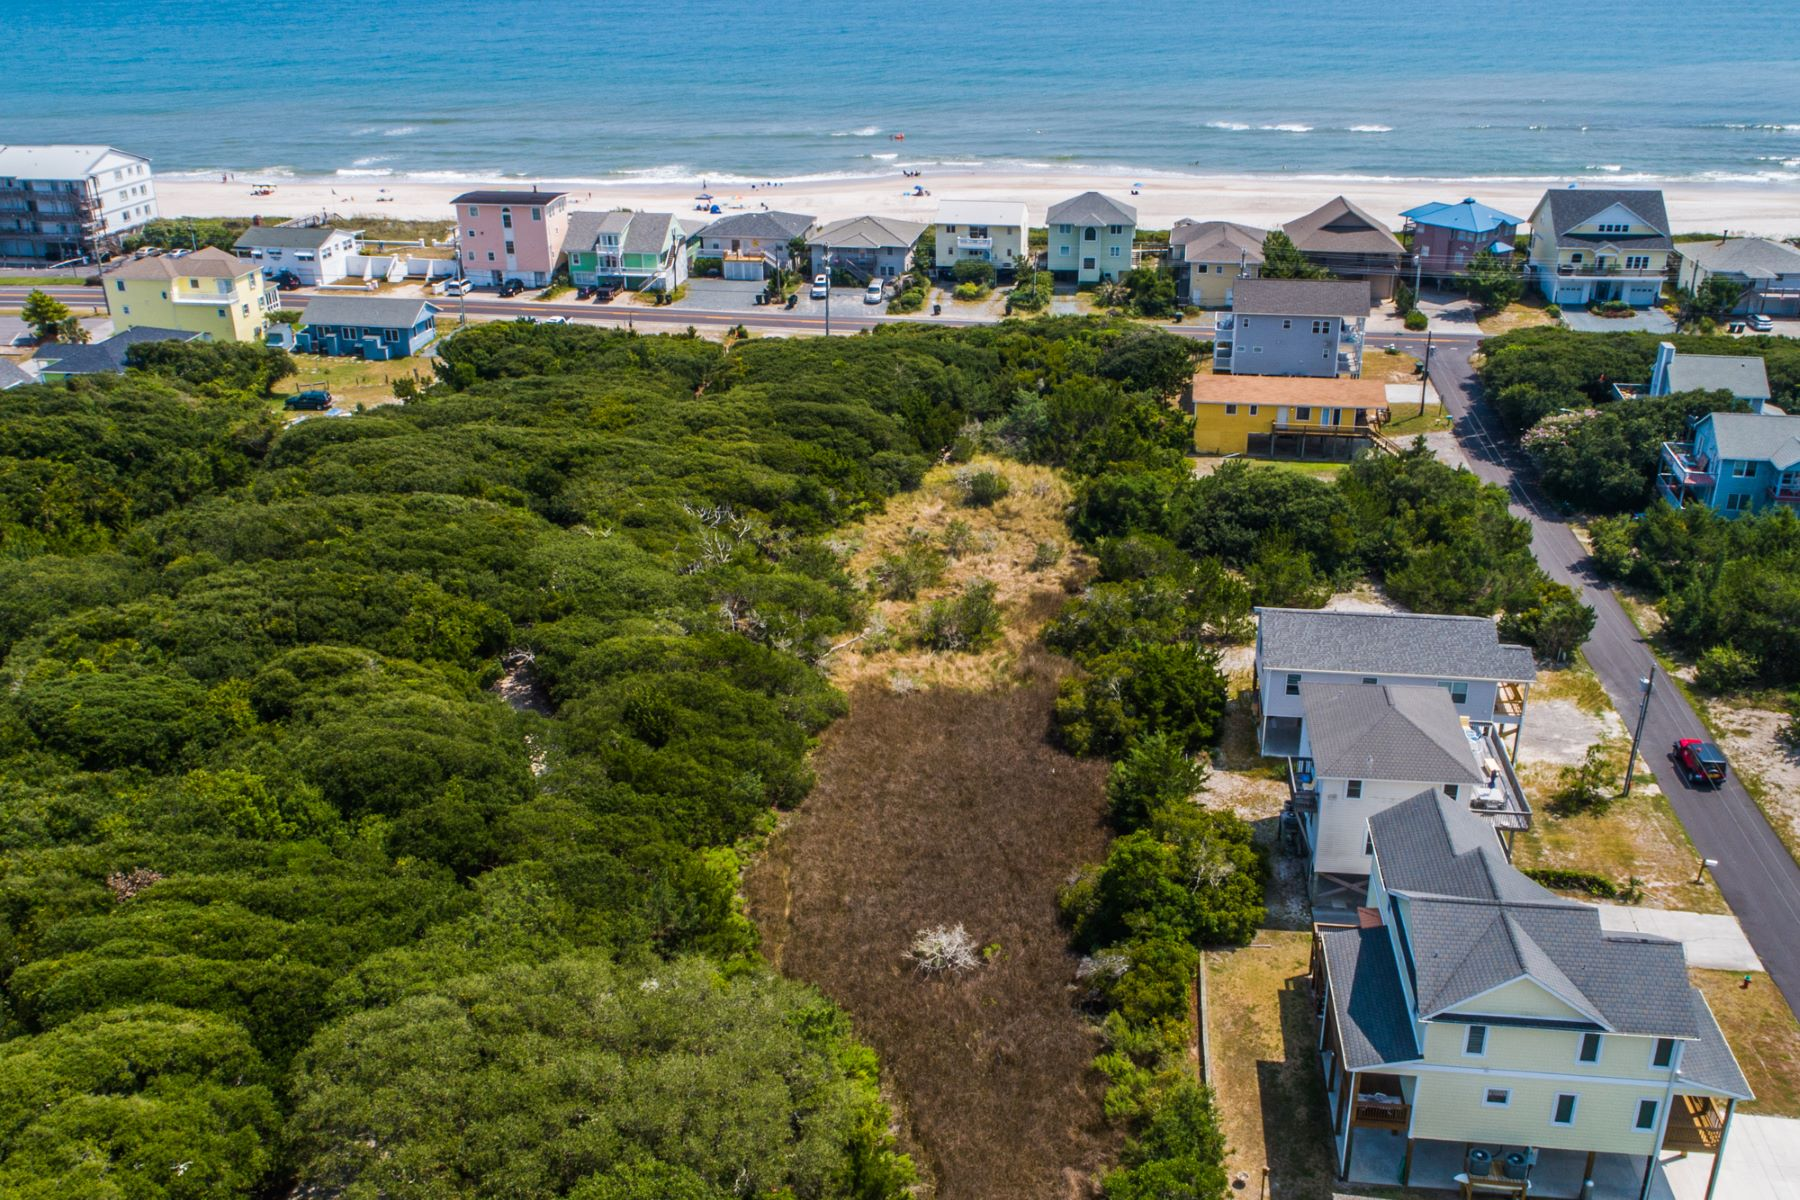 Land for Sale at Build Your Retreat on this Soundfront Property TBD N Anderson Blvd Topsail Beach, North Carolina 28445 United States